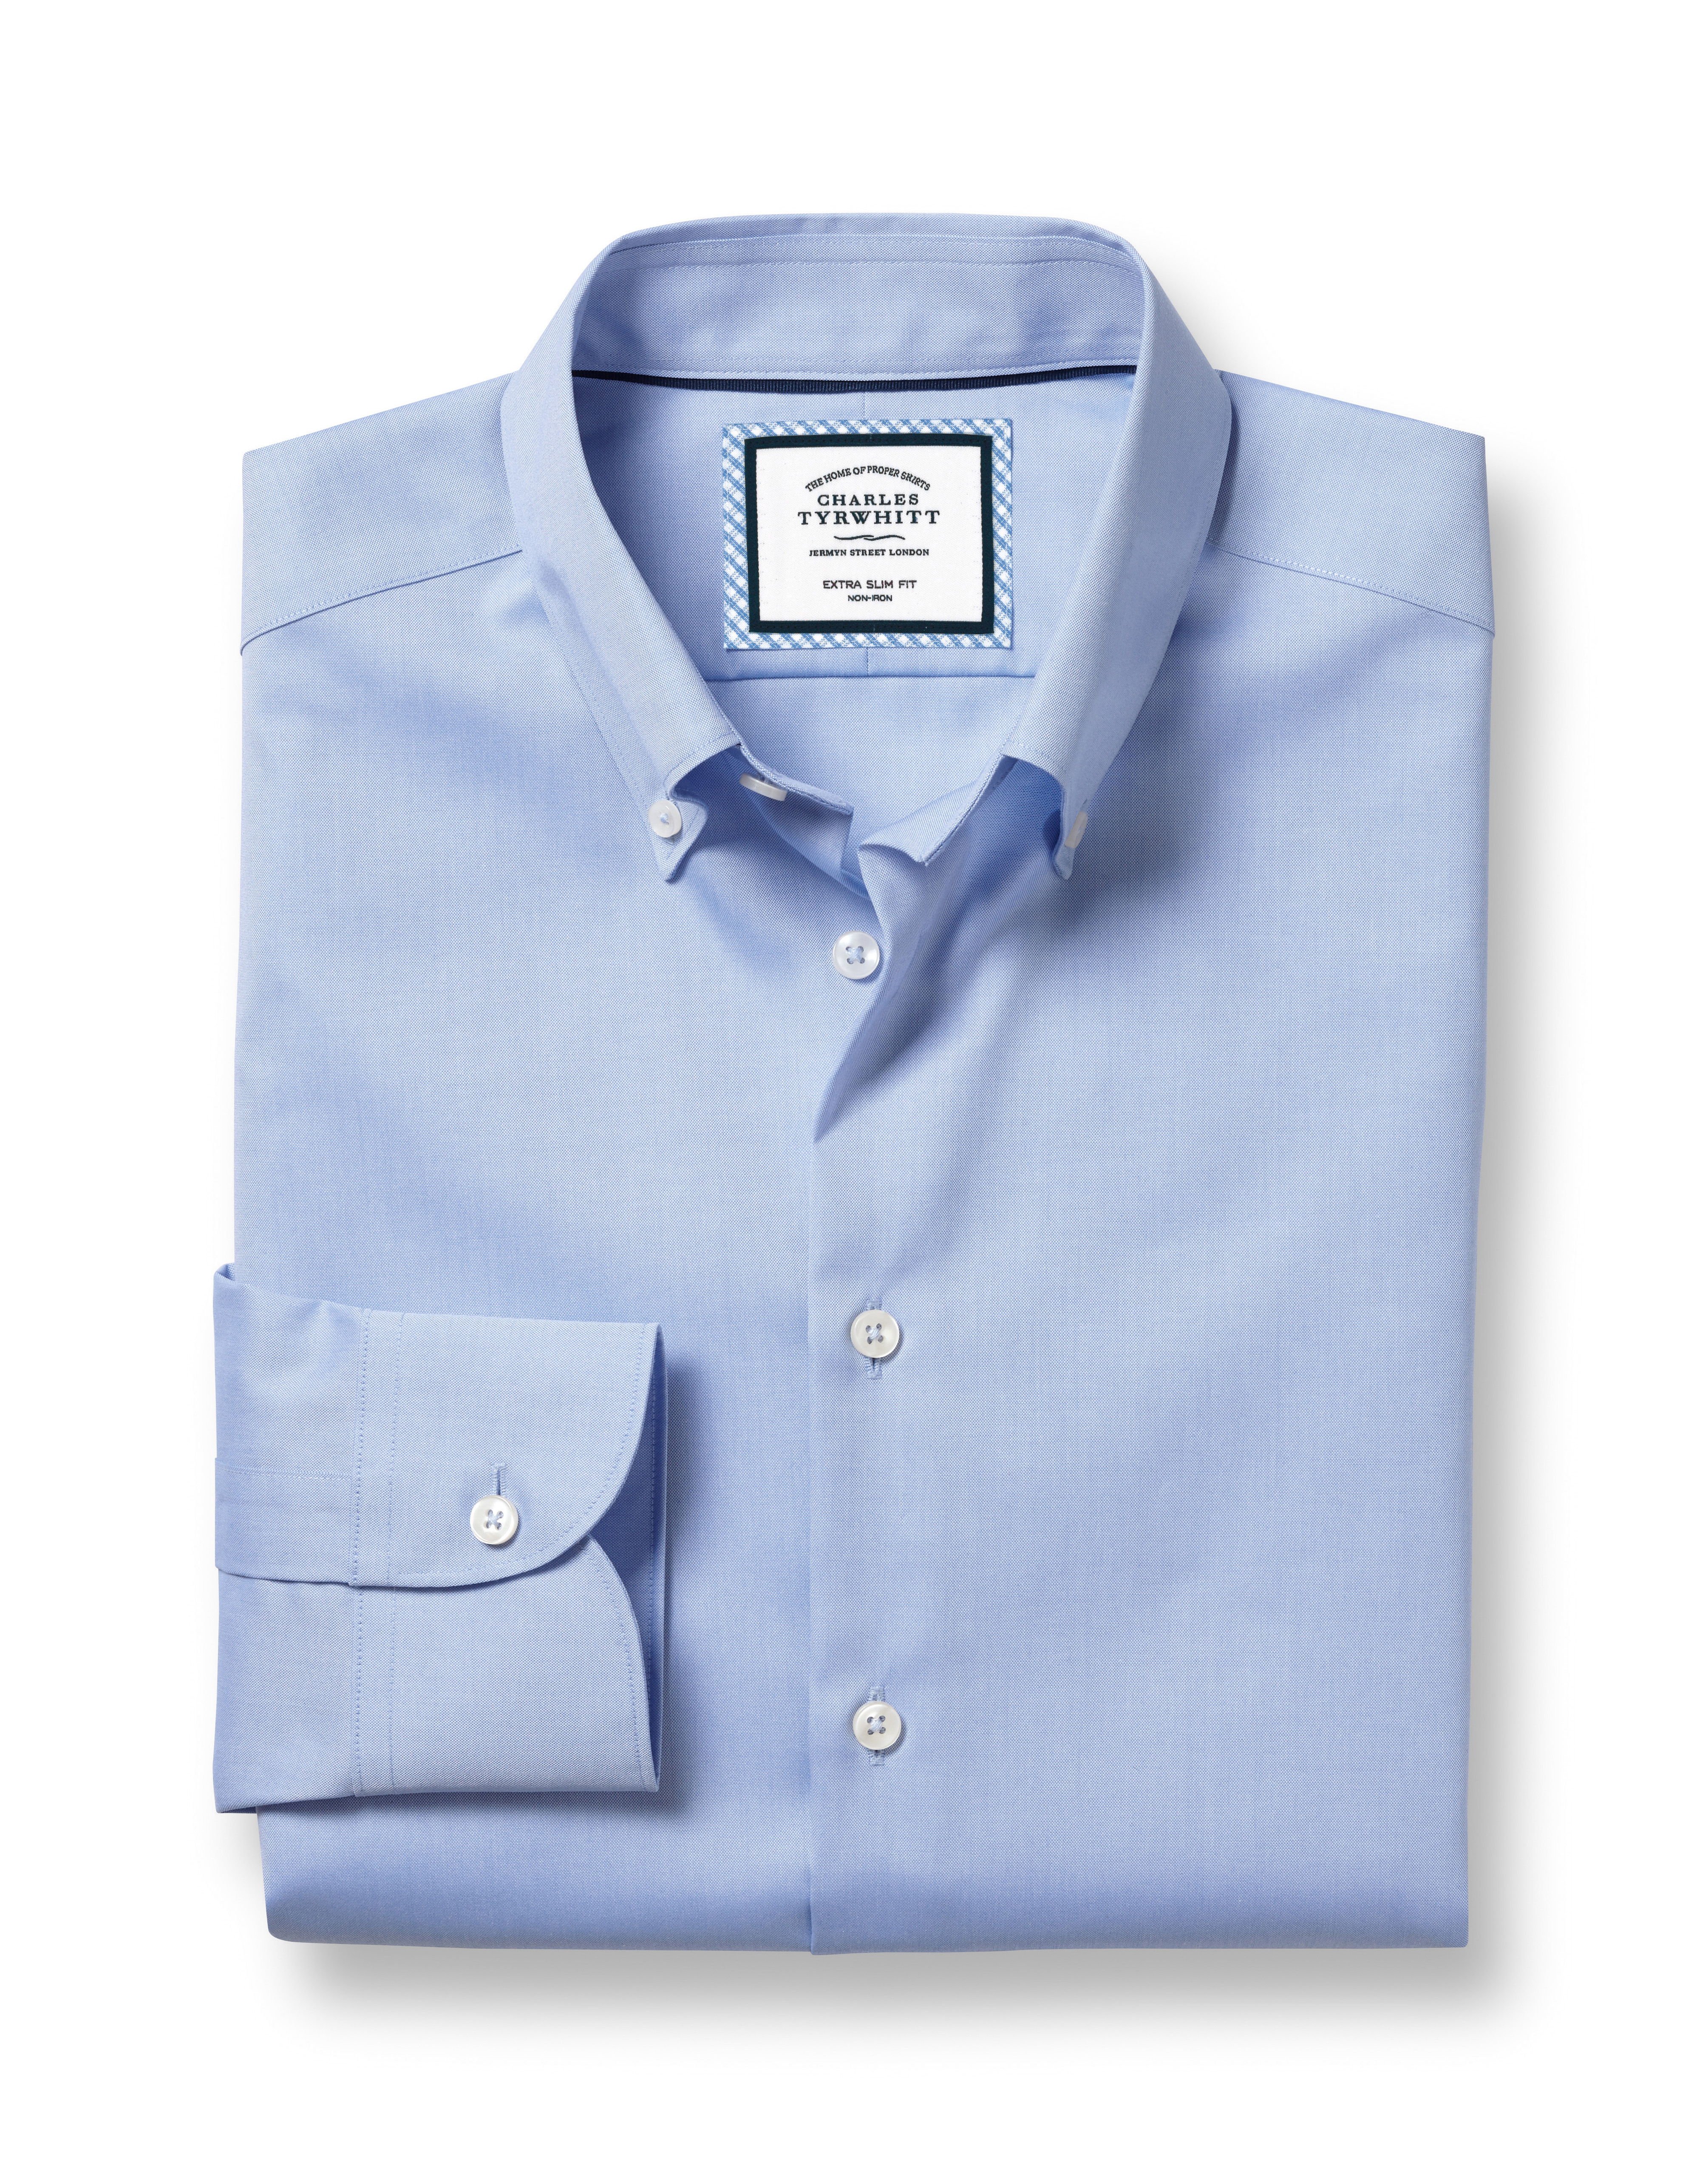 Extra Slim Fit Button-Down Business Casual Non-Iron Sky Blue Cotton Formal Shirt Single Cuff Size 15